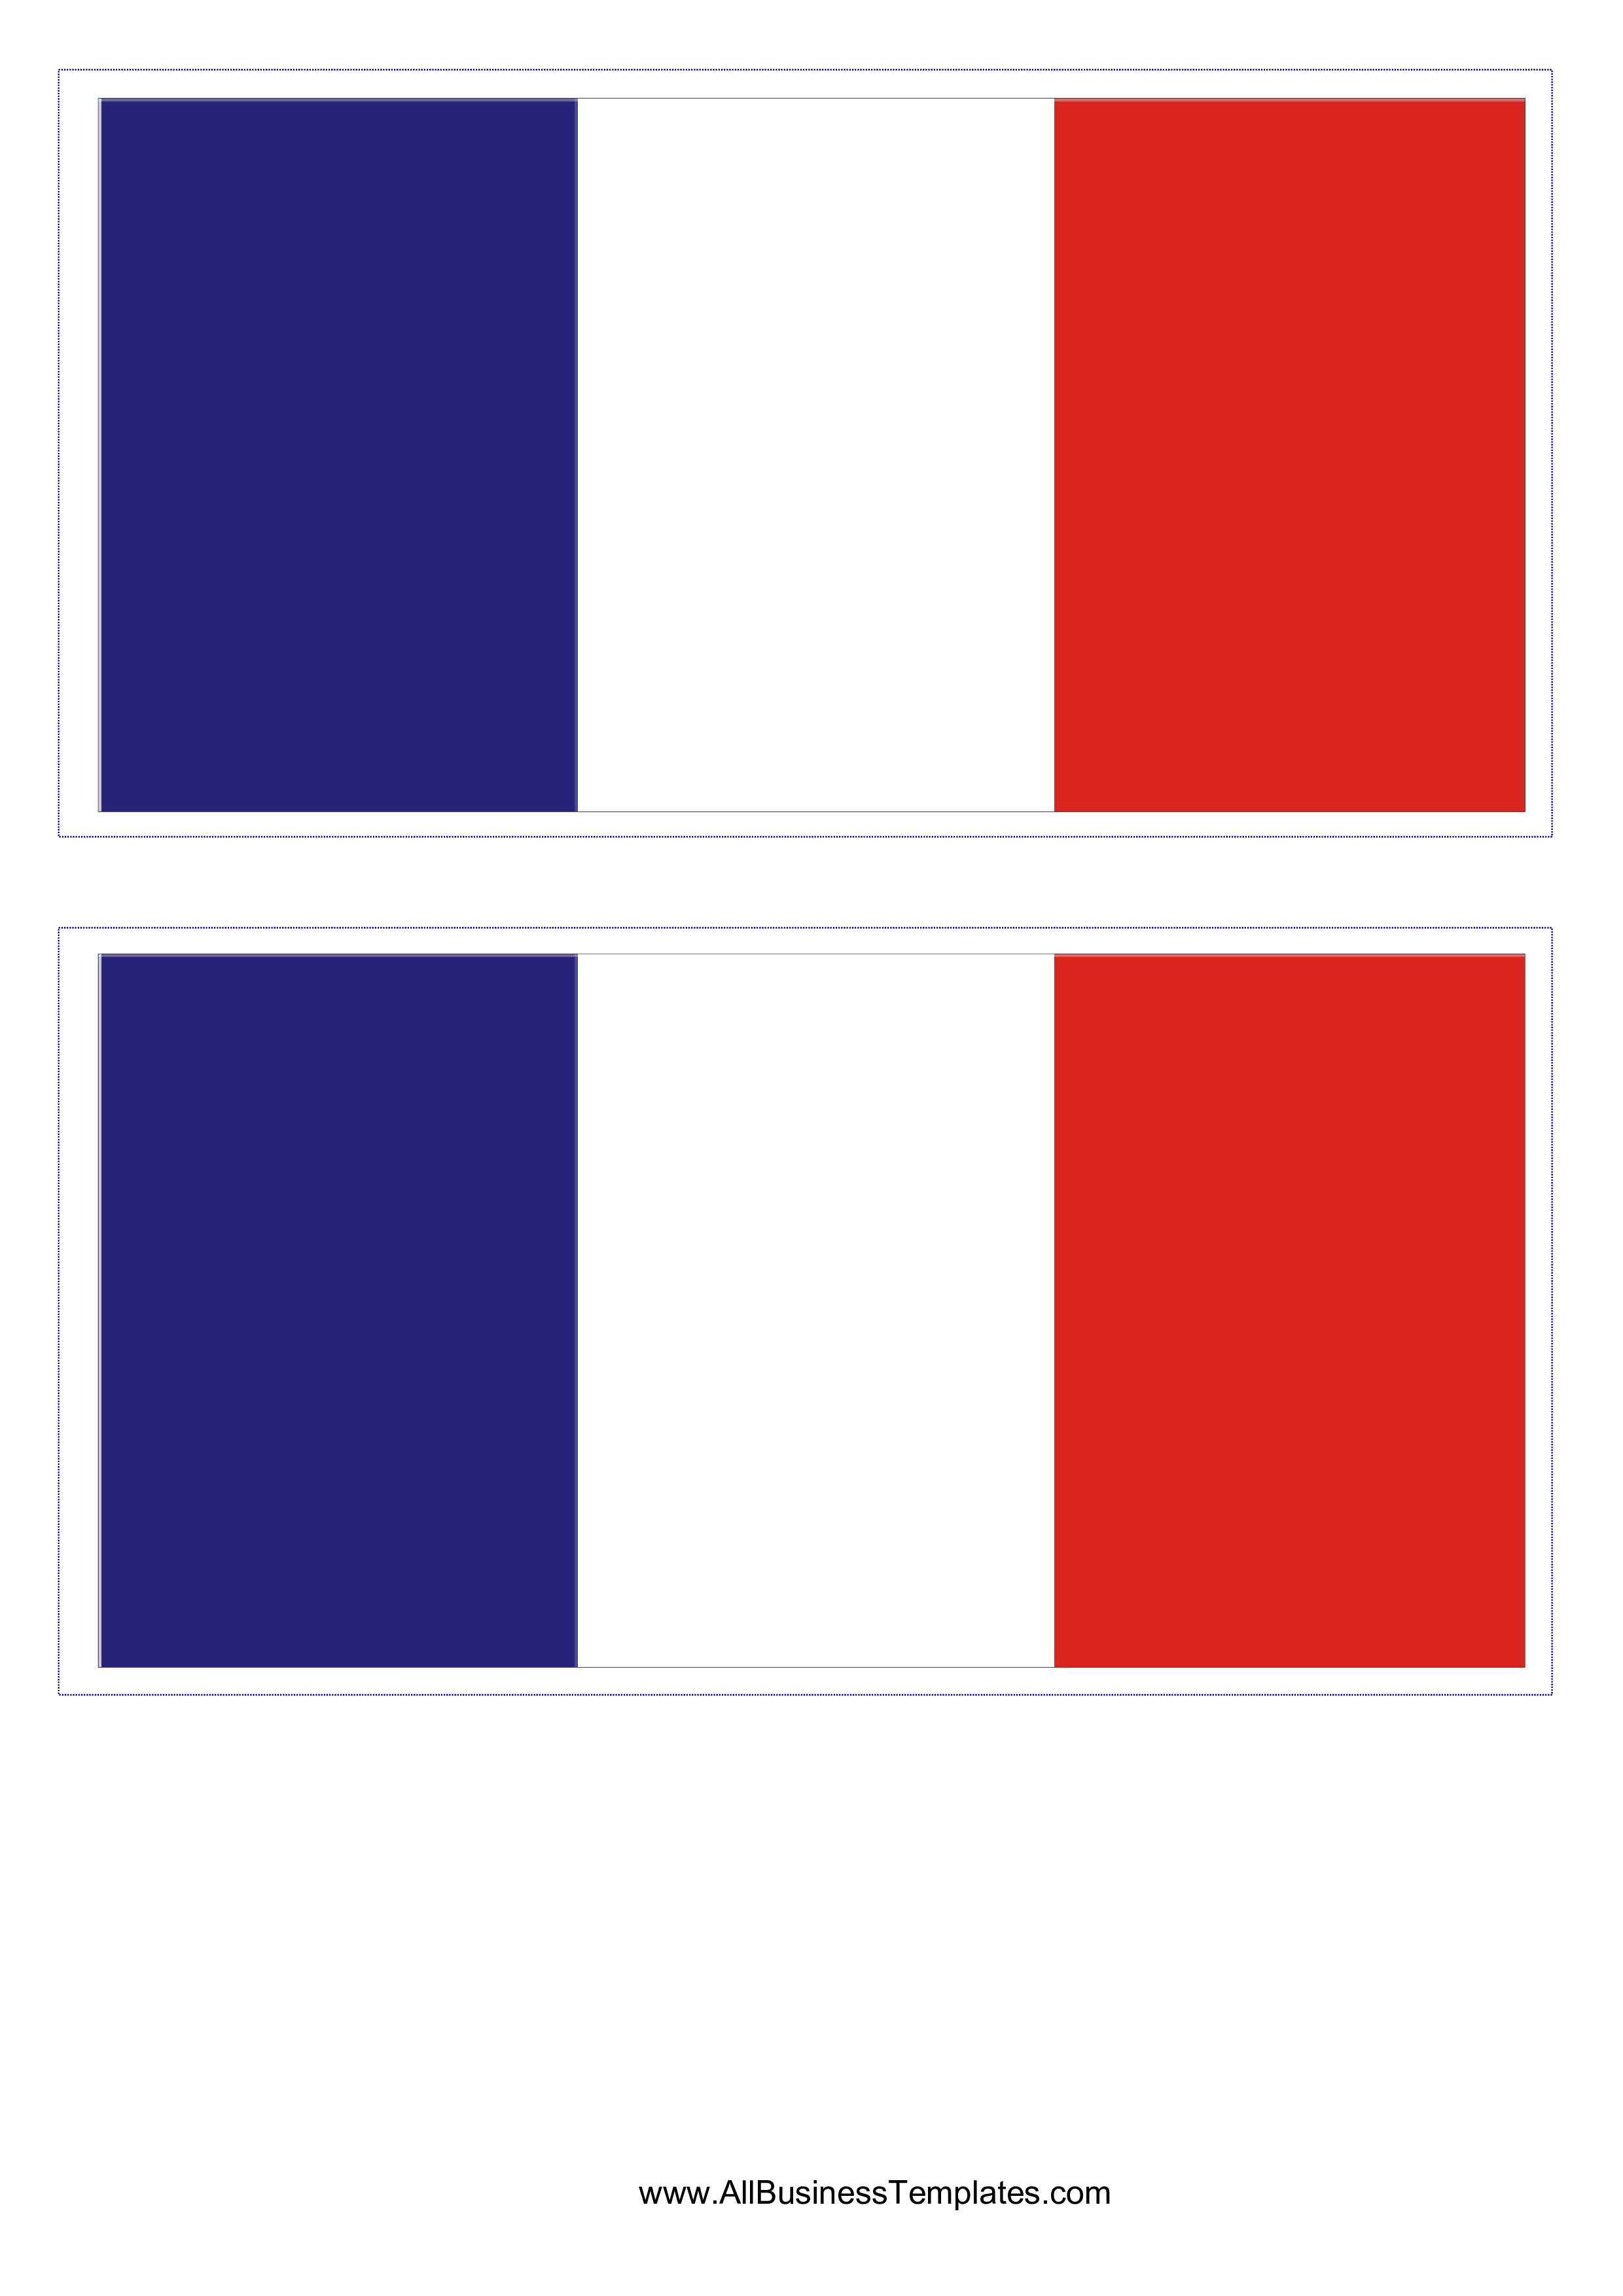 france flag download this free printable french flag template a4